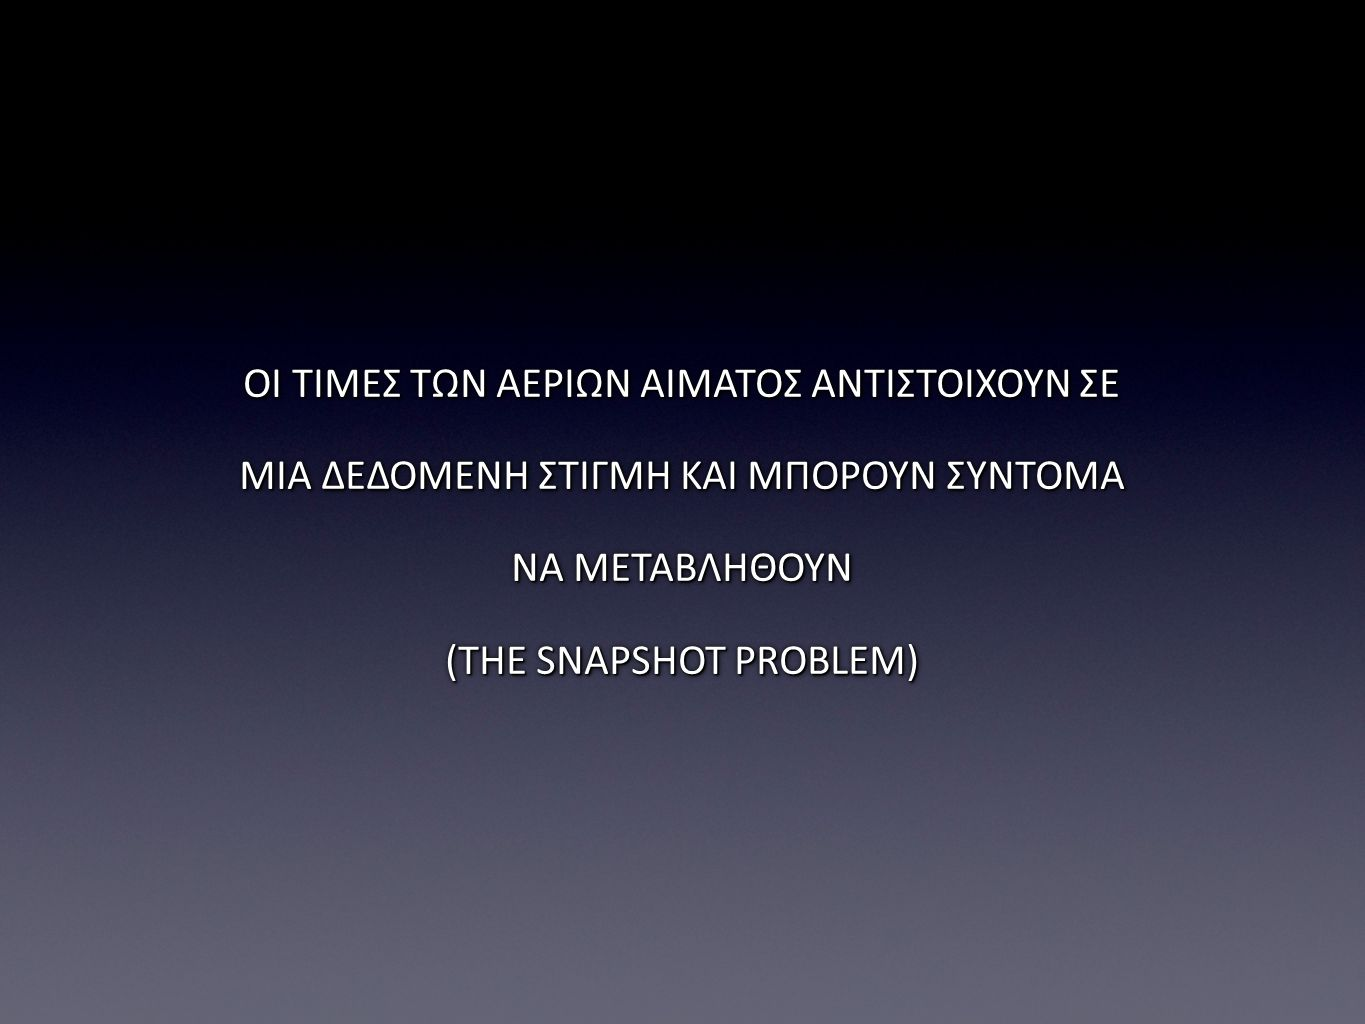 (THE SNAPSHOT PROBLEM)